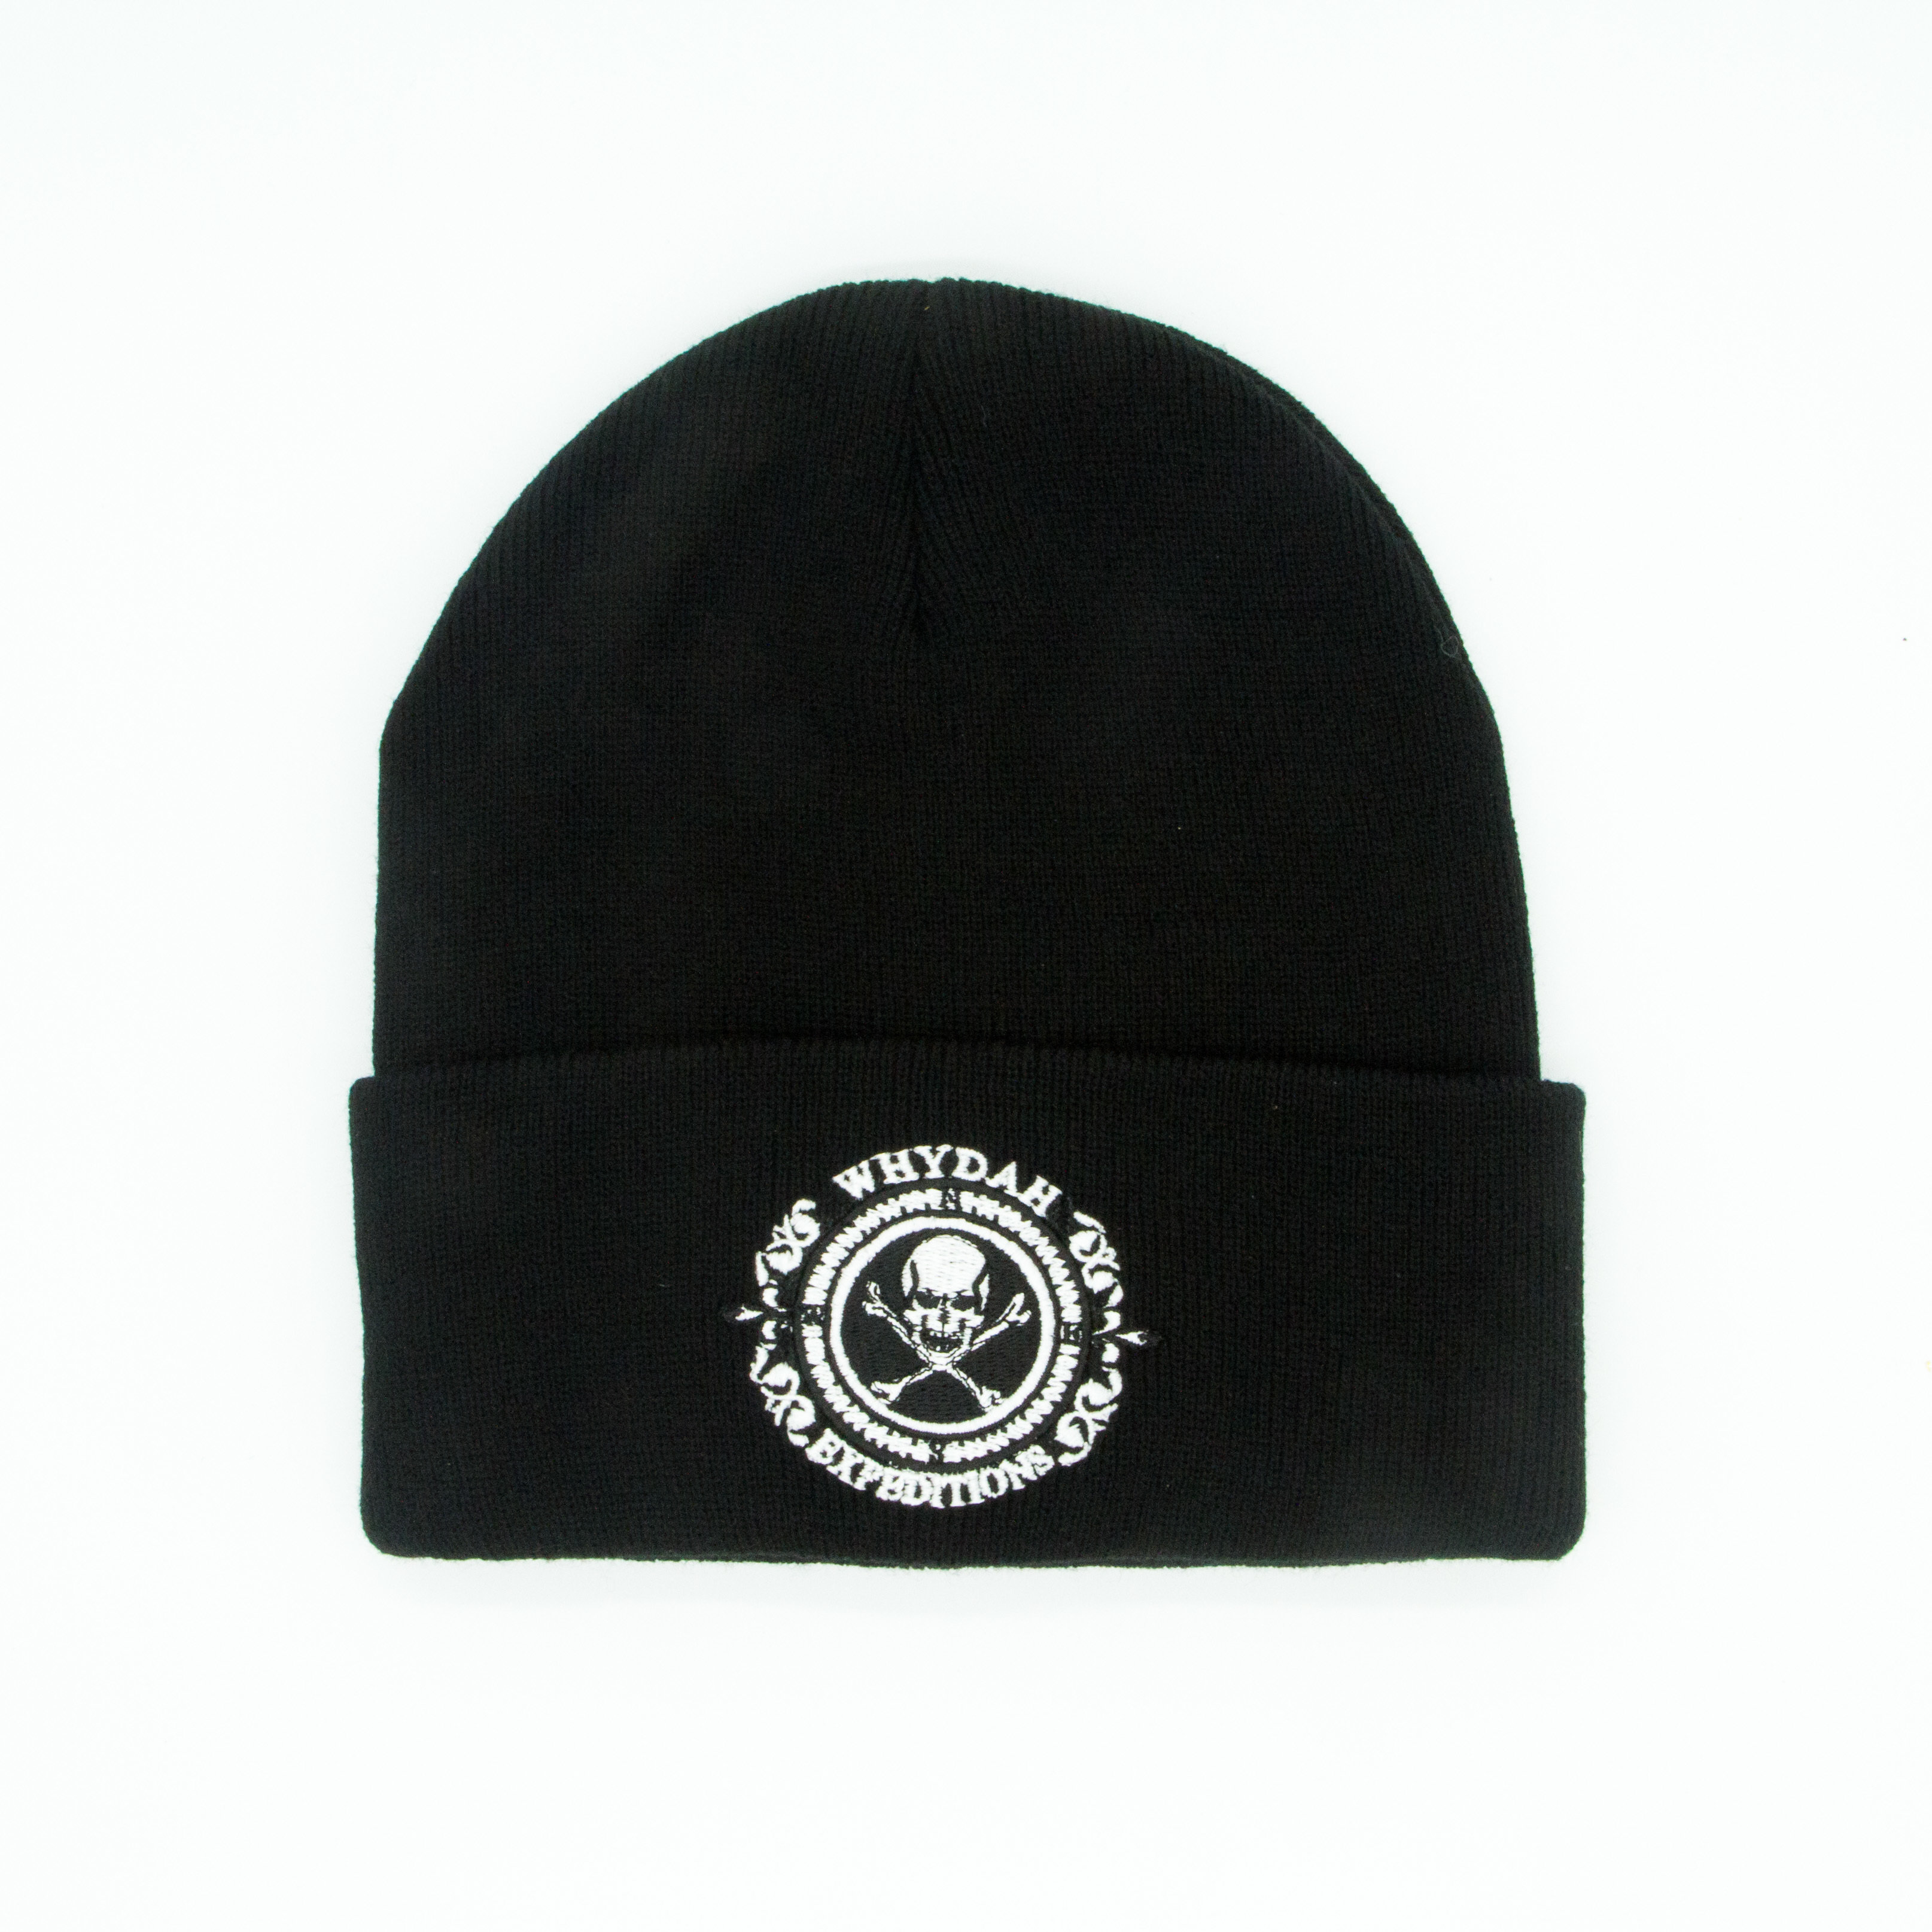 Expedition Whydah Knit Hat G8VRSQFFQ6YWJ